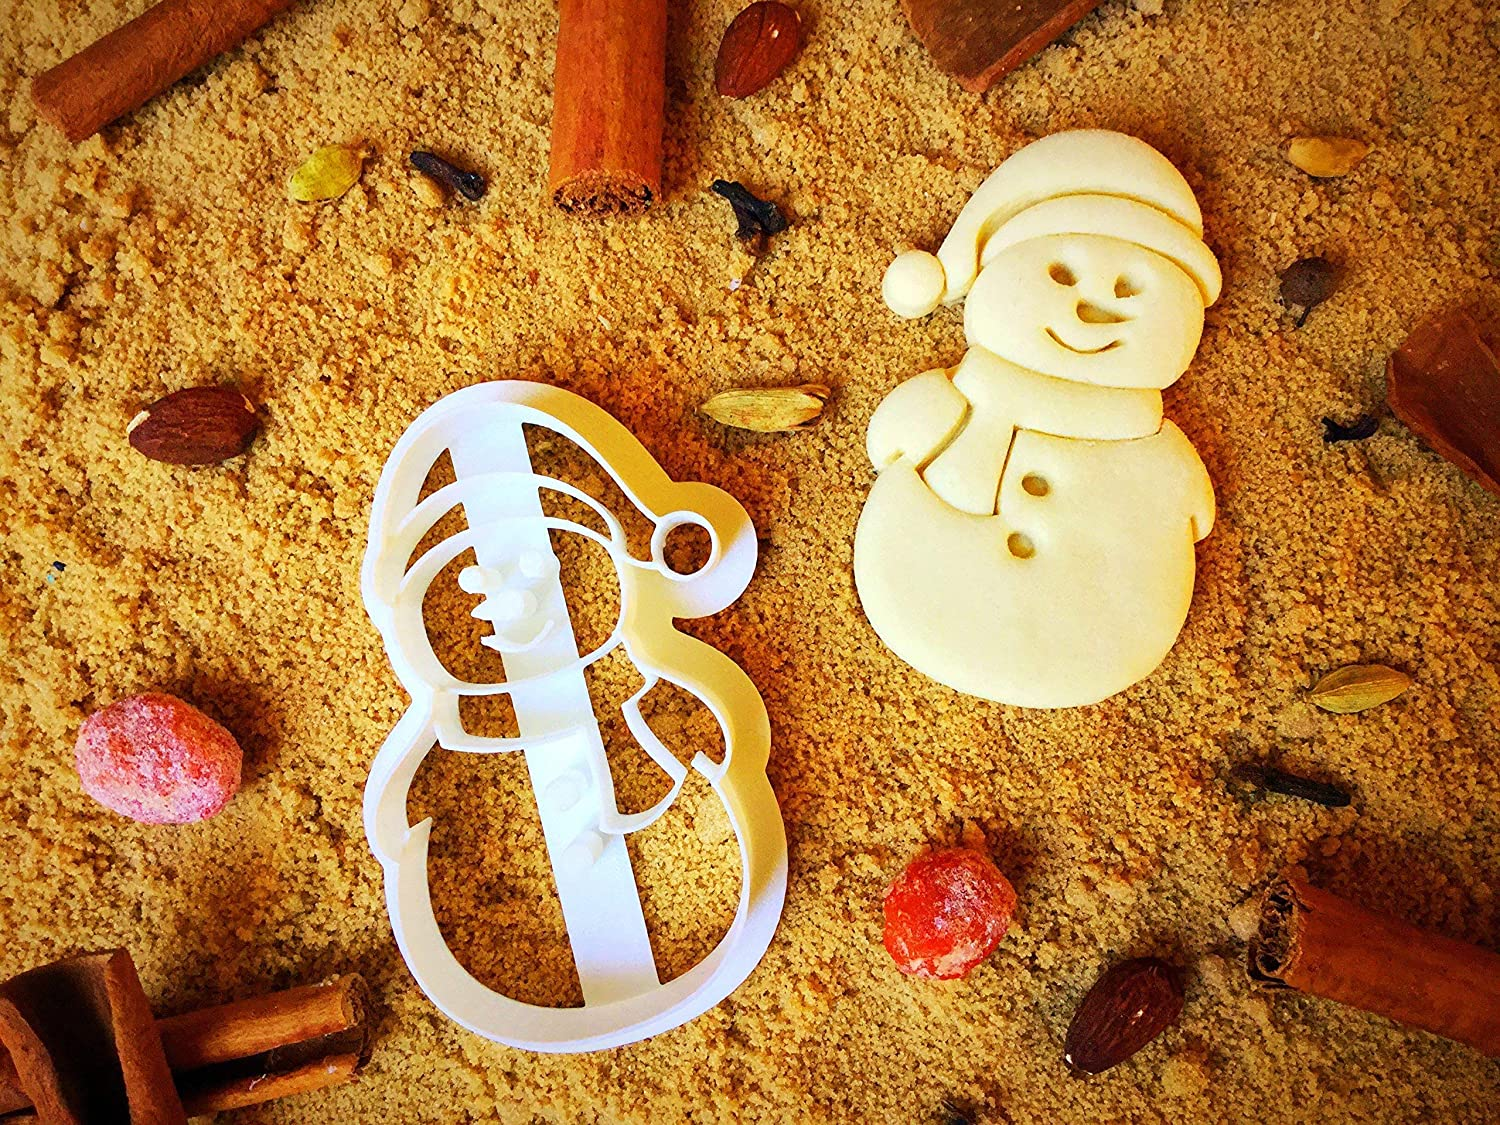 Snowman Cookie Cutter - Winter Presents for Kids - Christmas Cutters for Cookies Jar - Small Unique Xmas Present Shapes - Biscuit Baking Mold - 3.5inch - Eco Friendly by Sugary Charm